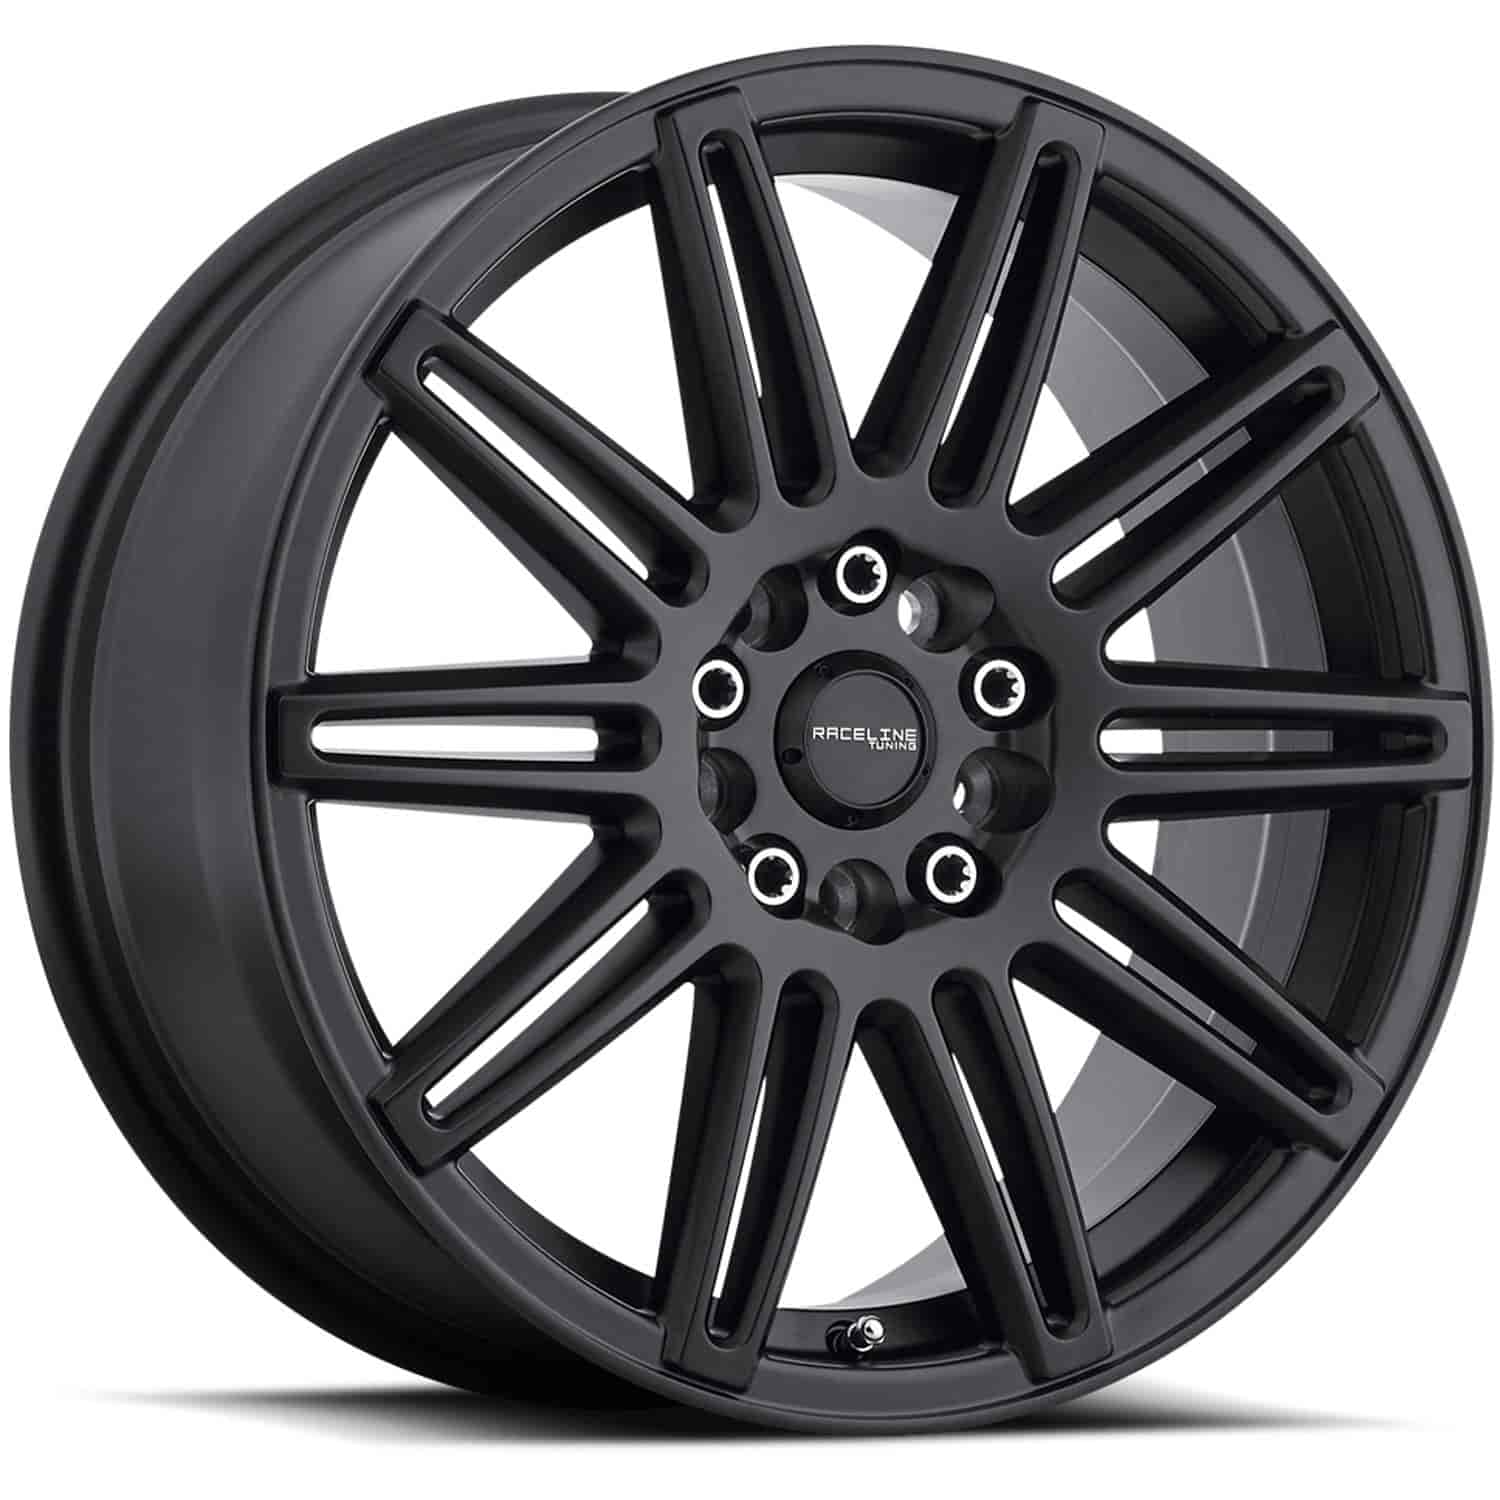 Raceline Wheels 143B7758240